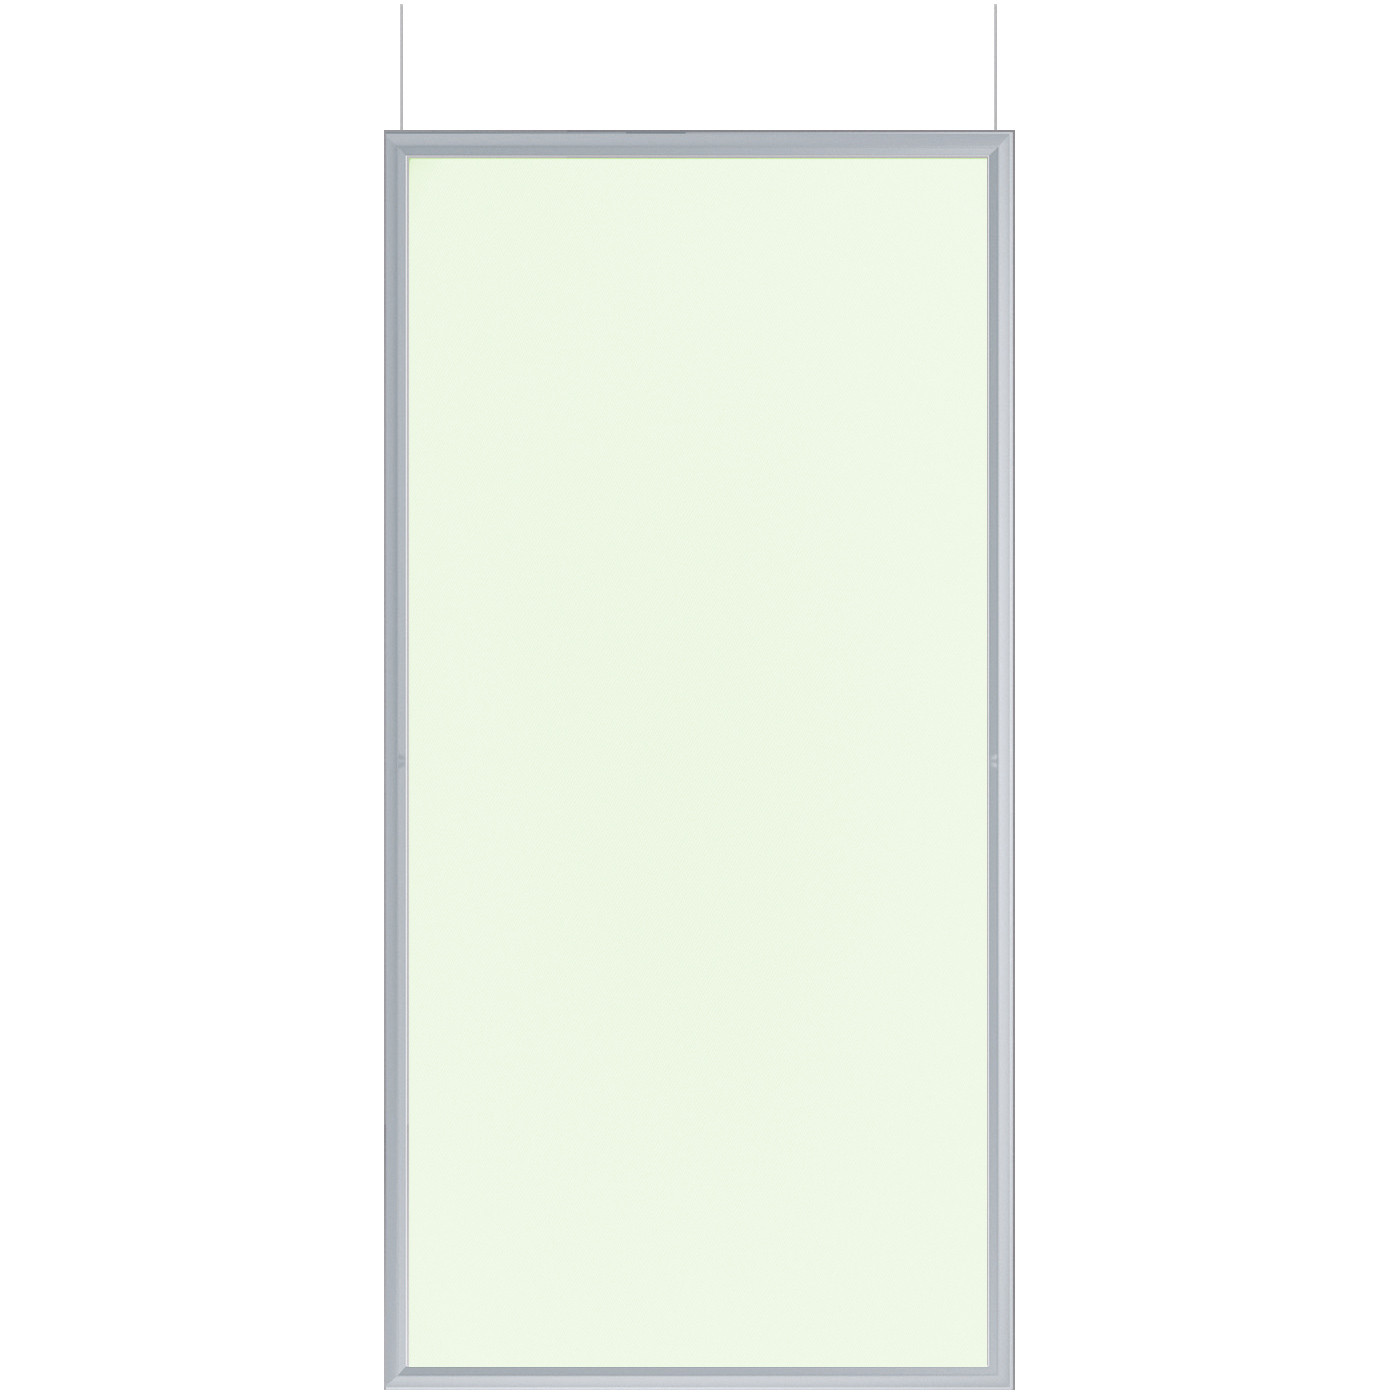 Artemide Discovery Space Rectangular RGBW